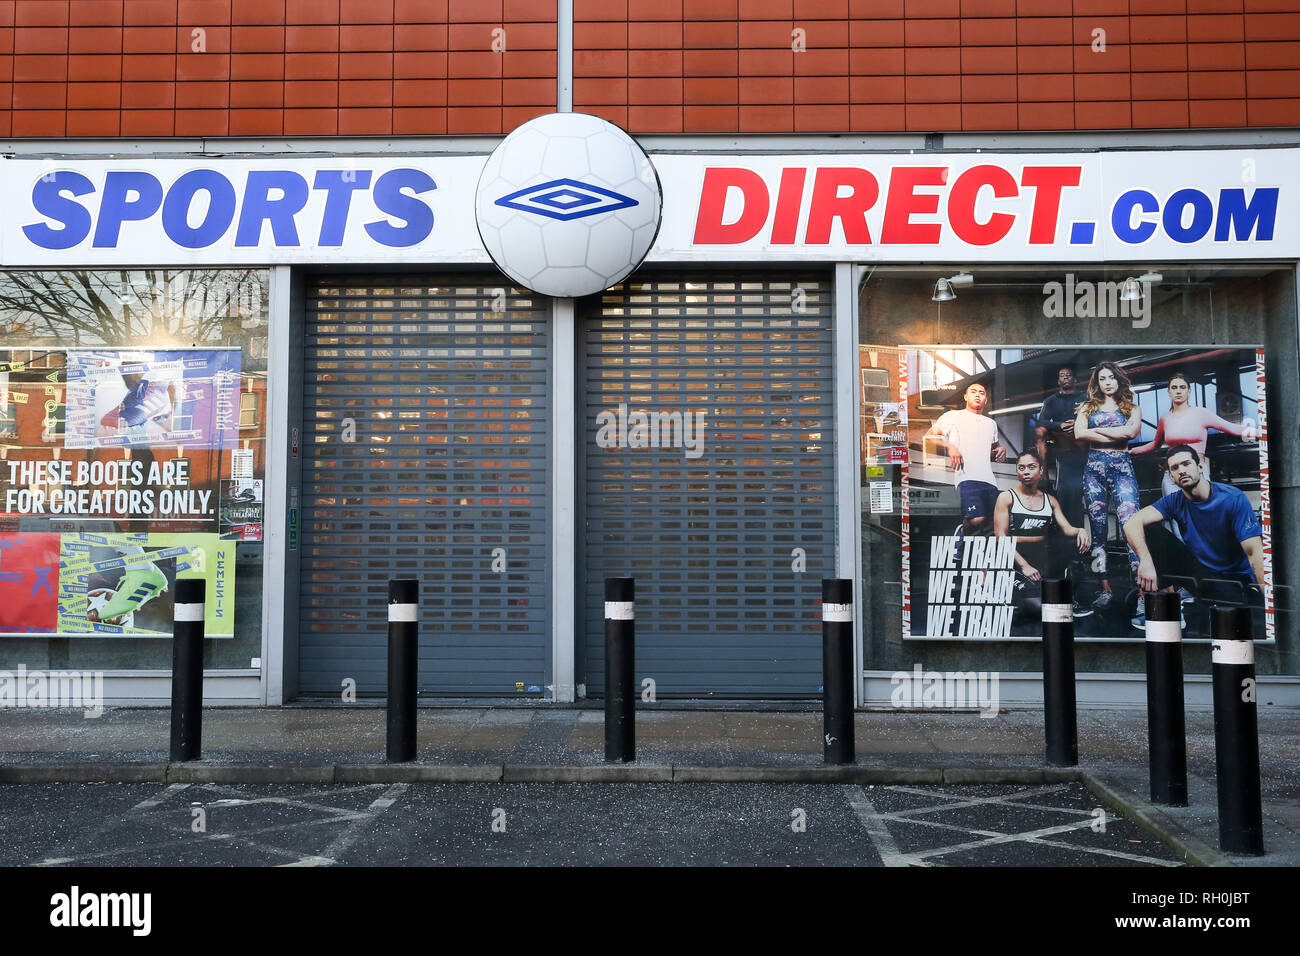 United Kingdom. 31st Jan, 2019. A general view of Sports Direct store in London. The Environmental Audit Committee led by Labour MP Mary Creagh has reported that retailer such as Sports Direct are 'failing to take action'' to reduce their environmental impact. Credit: Dinendra Haria/SOPA Images/ZUMA Wire/Alamy Live News - Stock Image